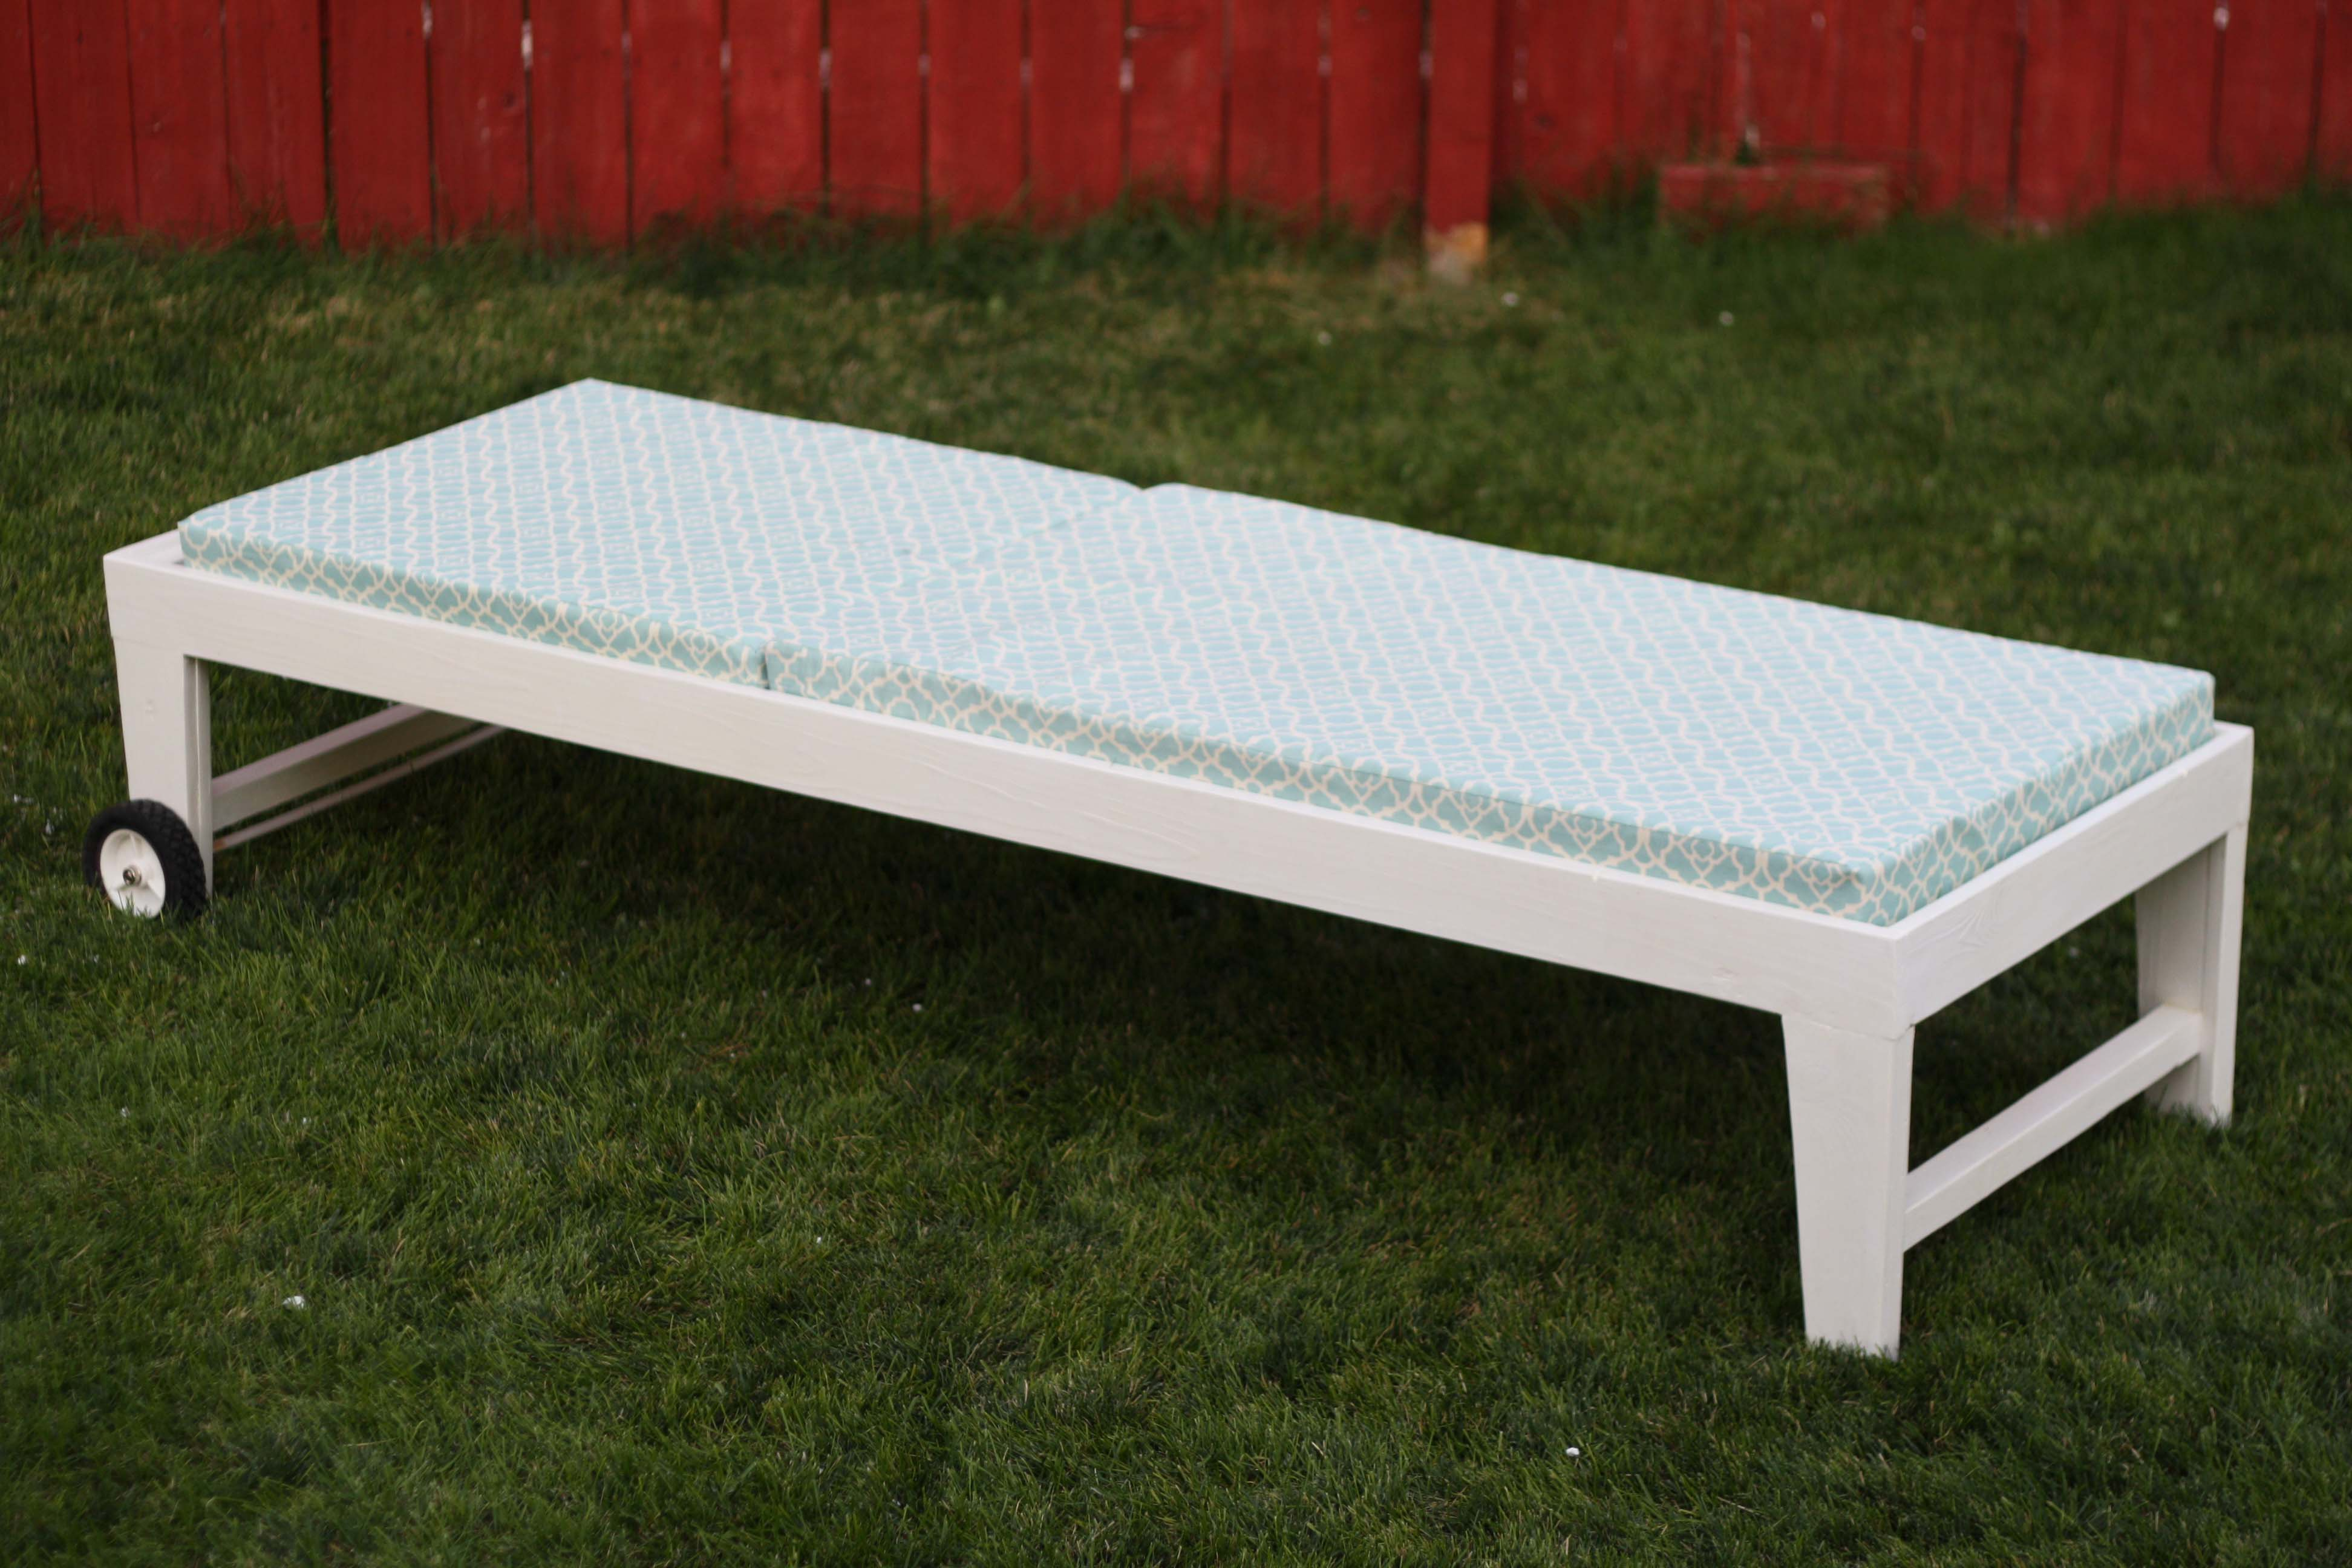 Ana white turquoise chaise lounger diy projects for Ana white chaise lounge